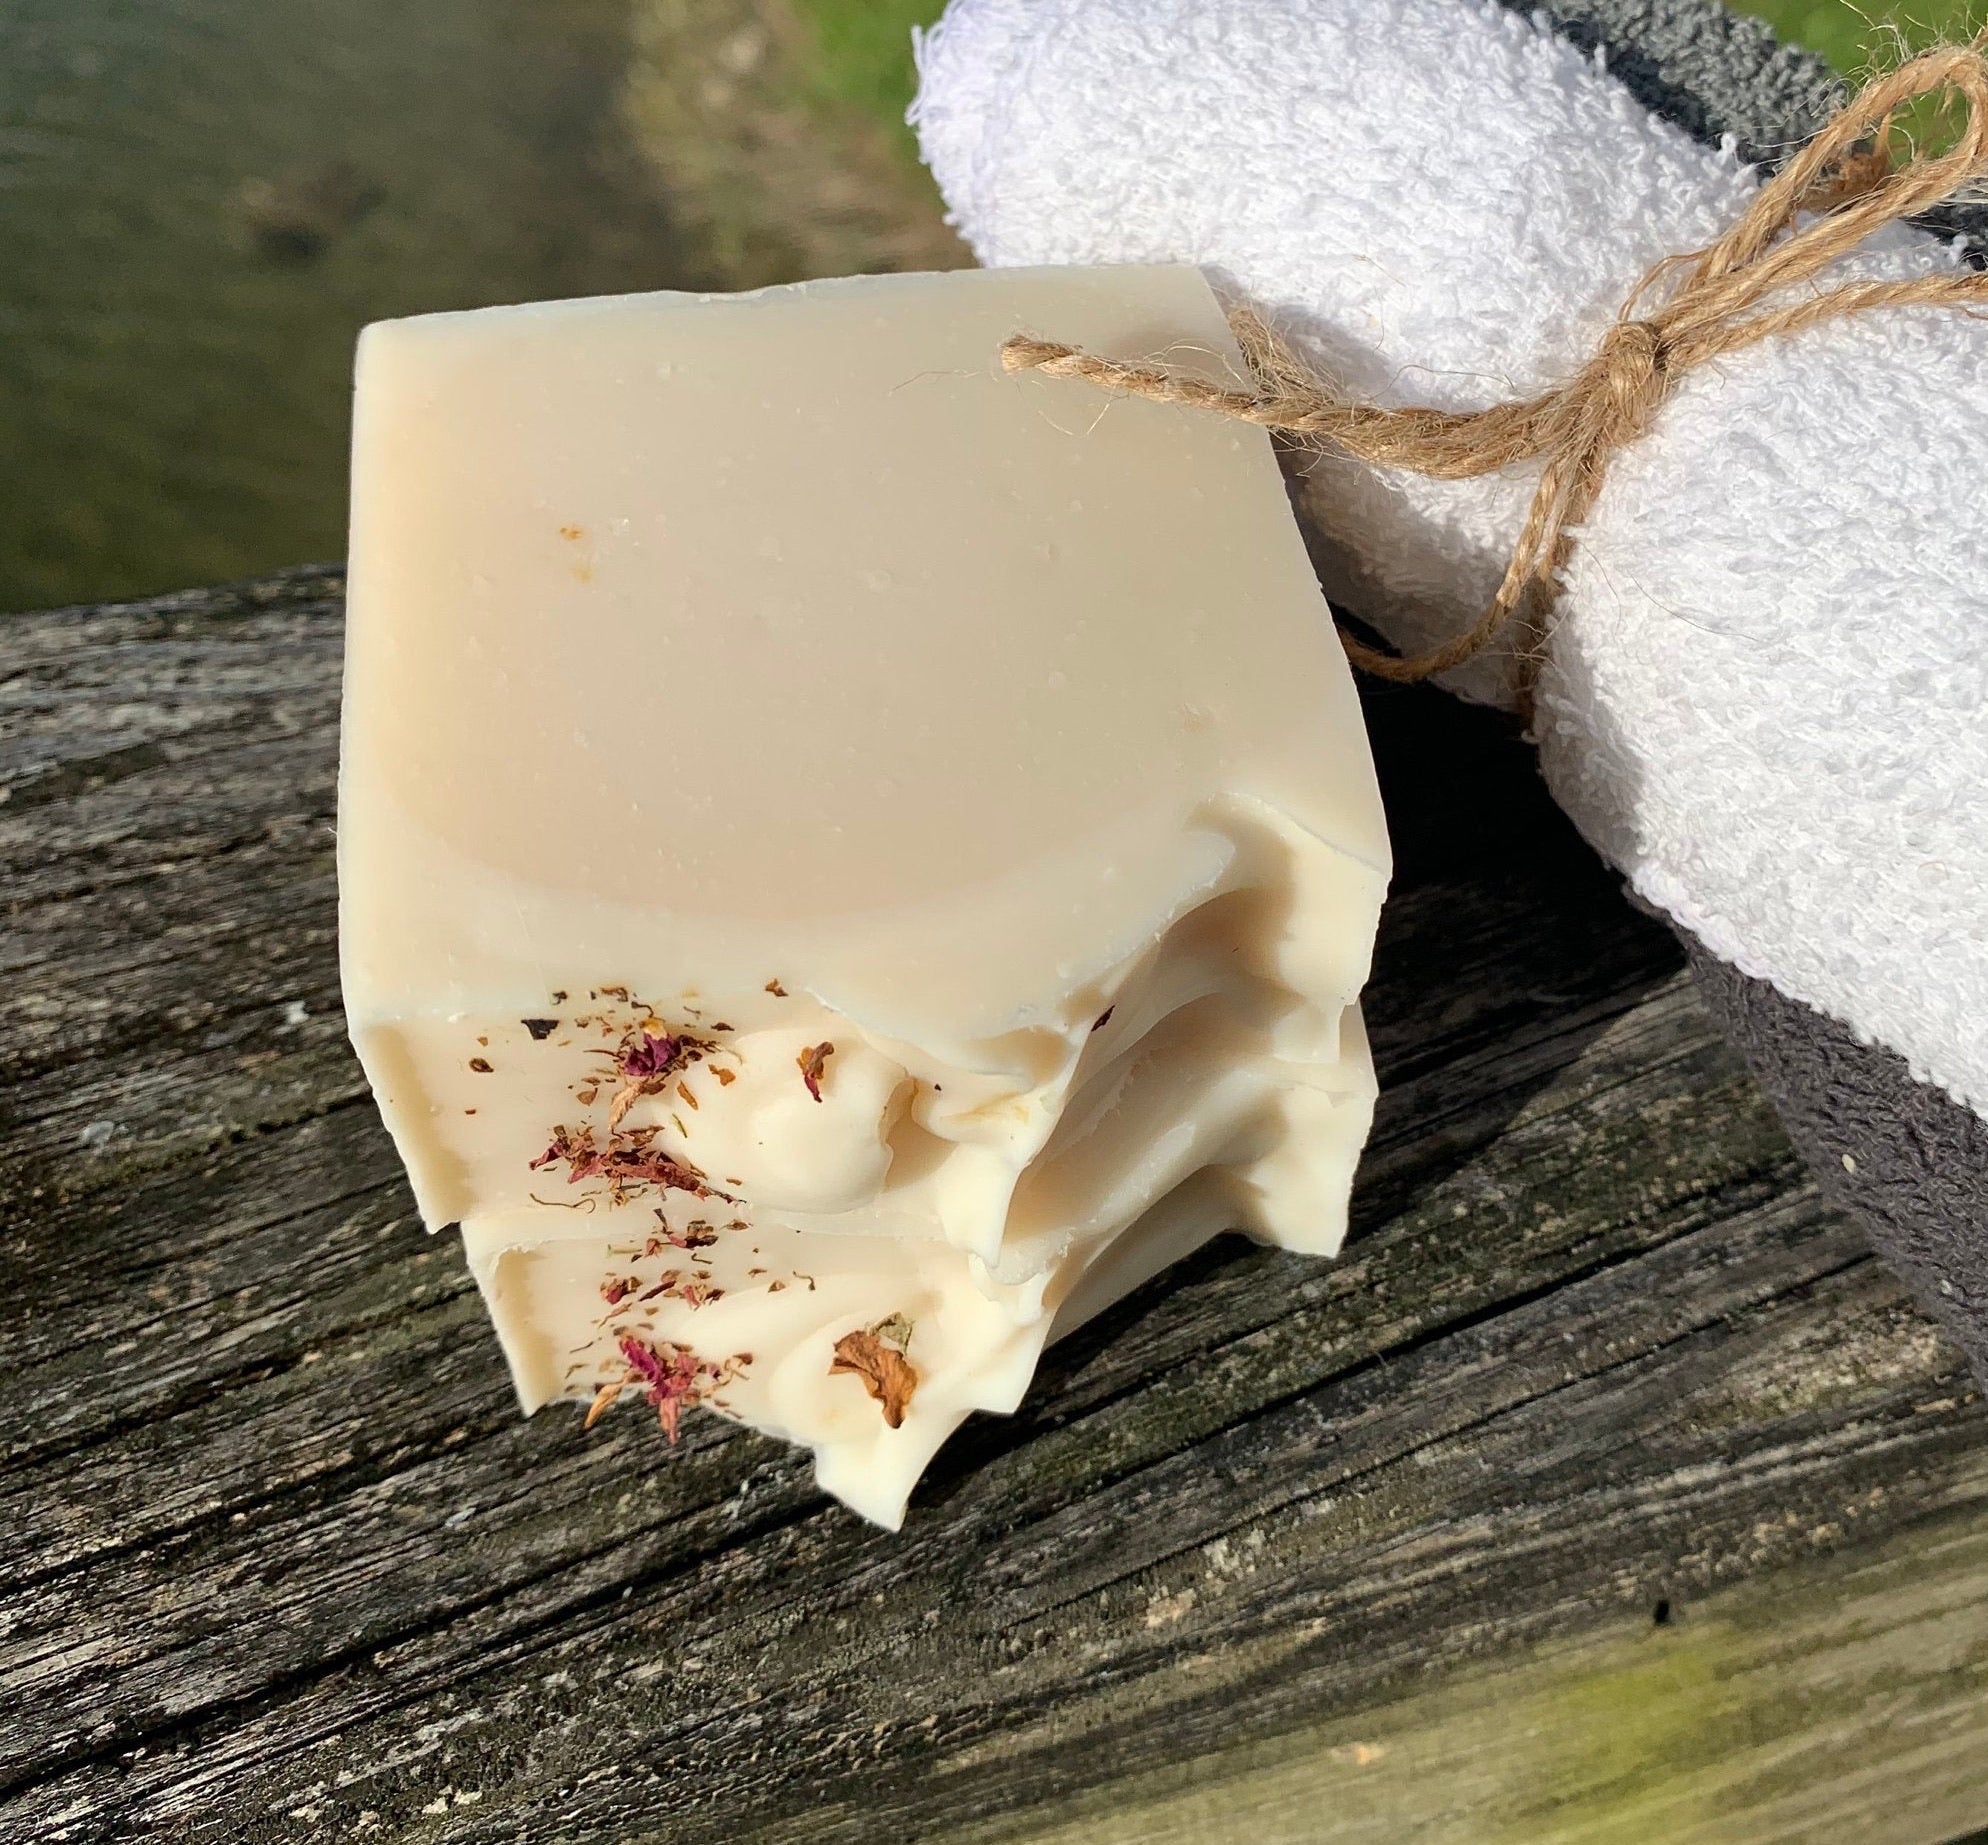 Yoni/ Apple Cider Vinegar Soap 3-4oz